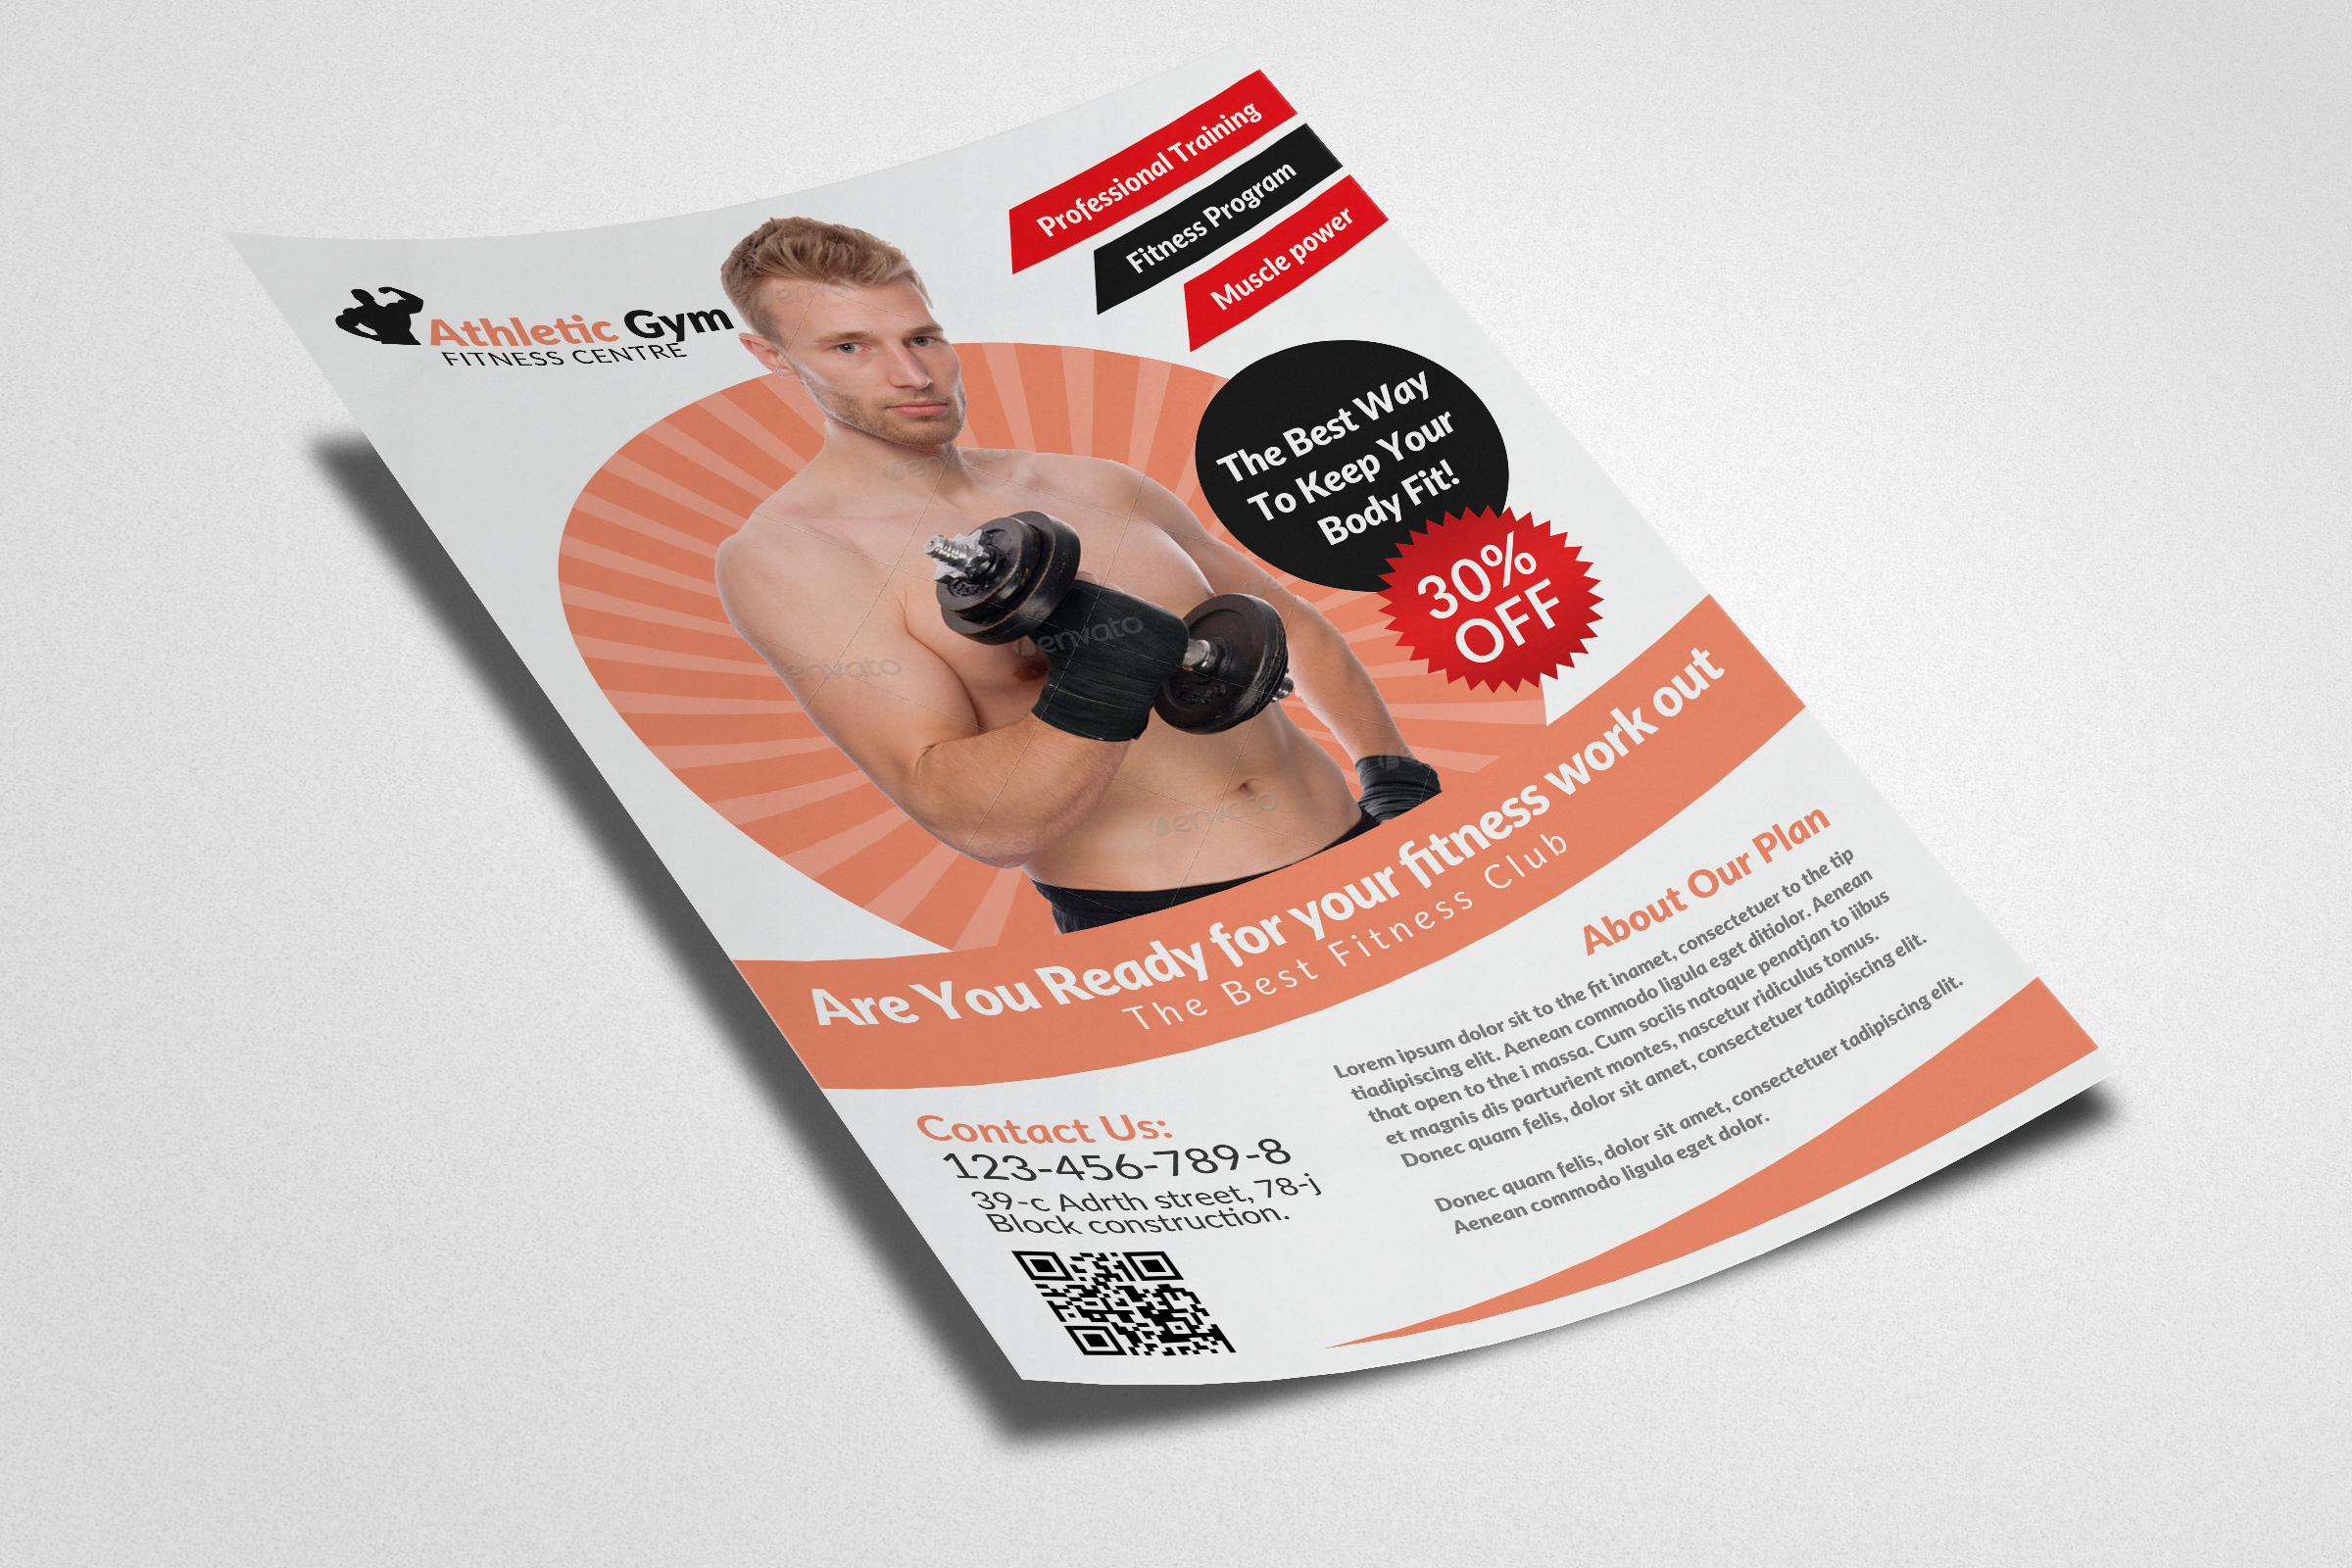 Body Fitness Gym Flyer Template example image 3